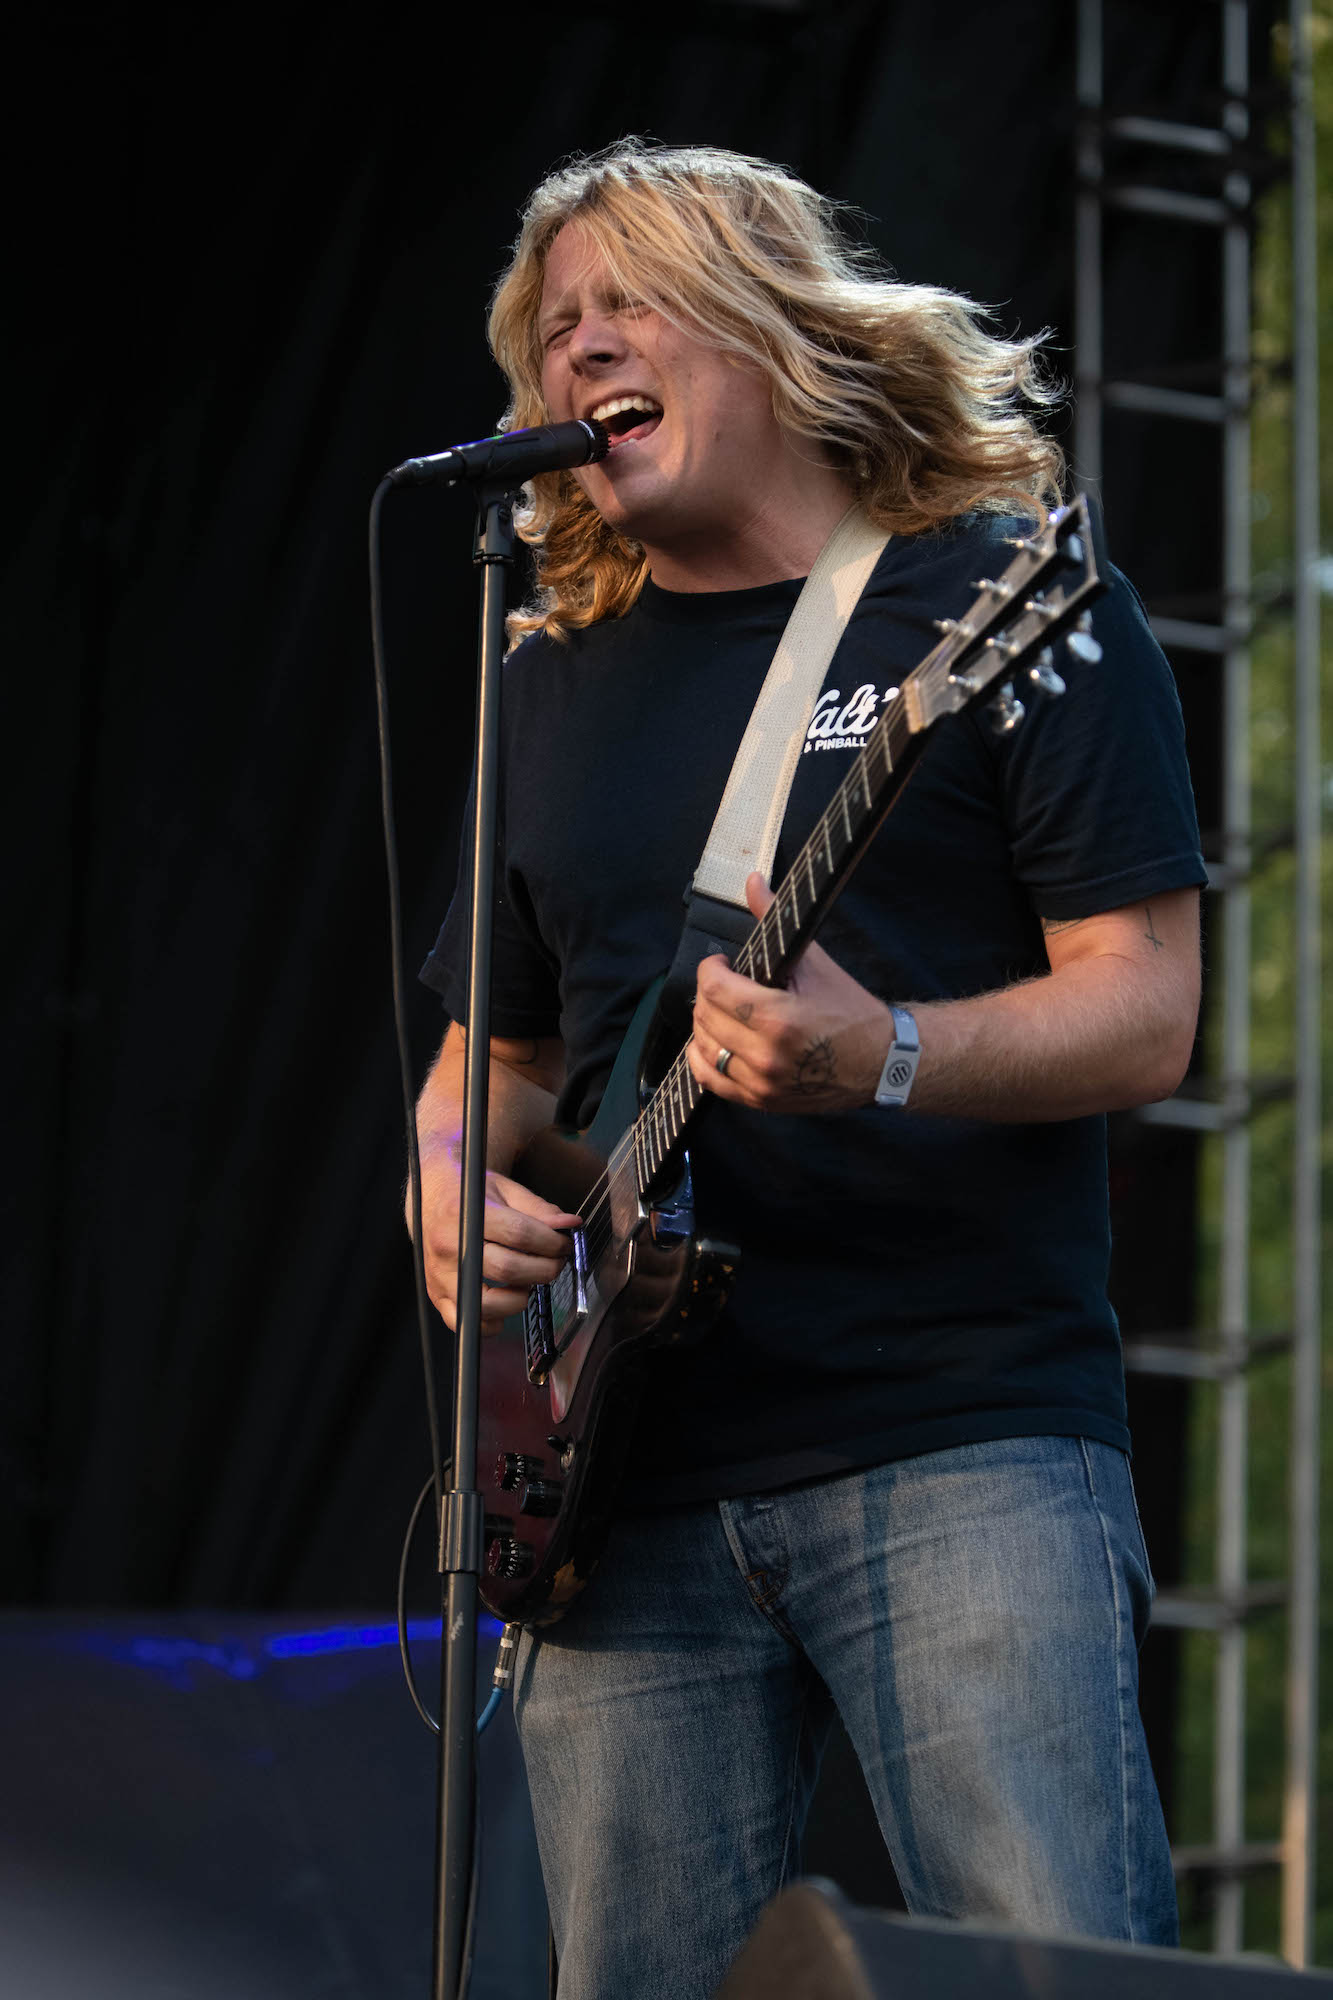 Ty Segall Live at Pitchfork [GALLERY] 8